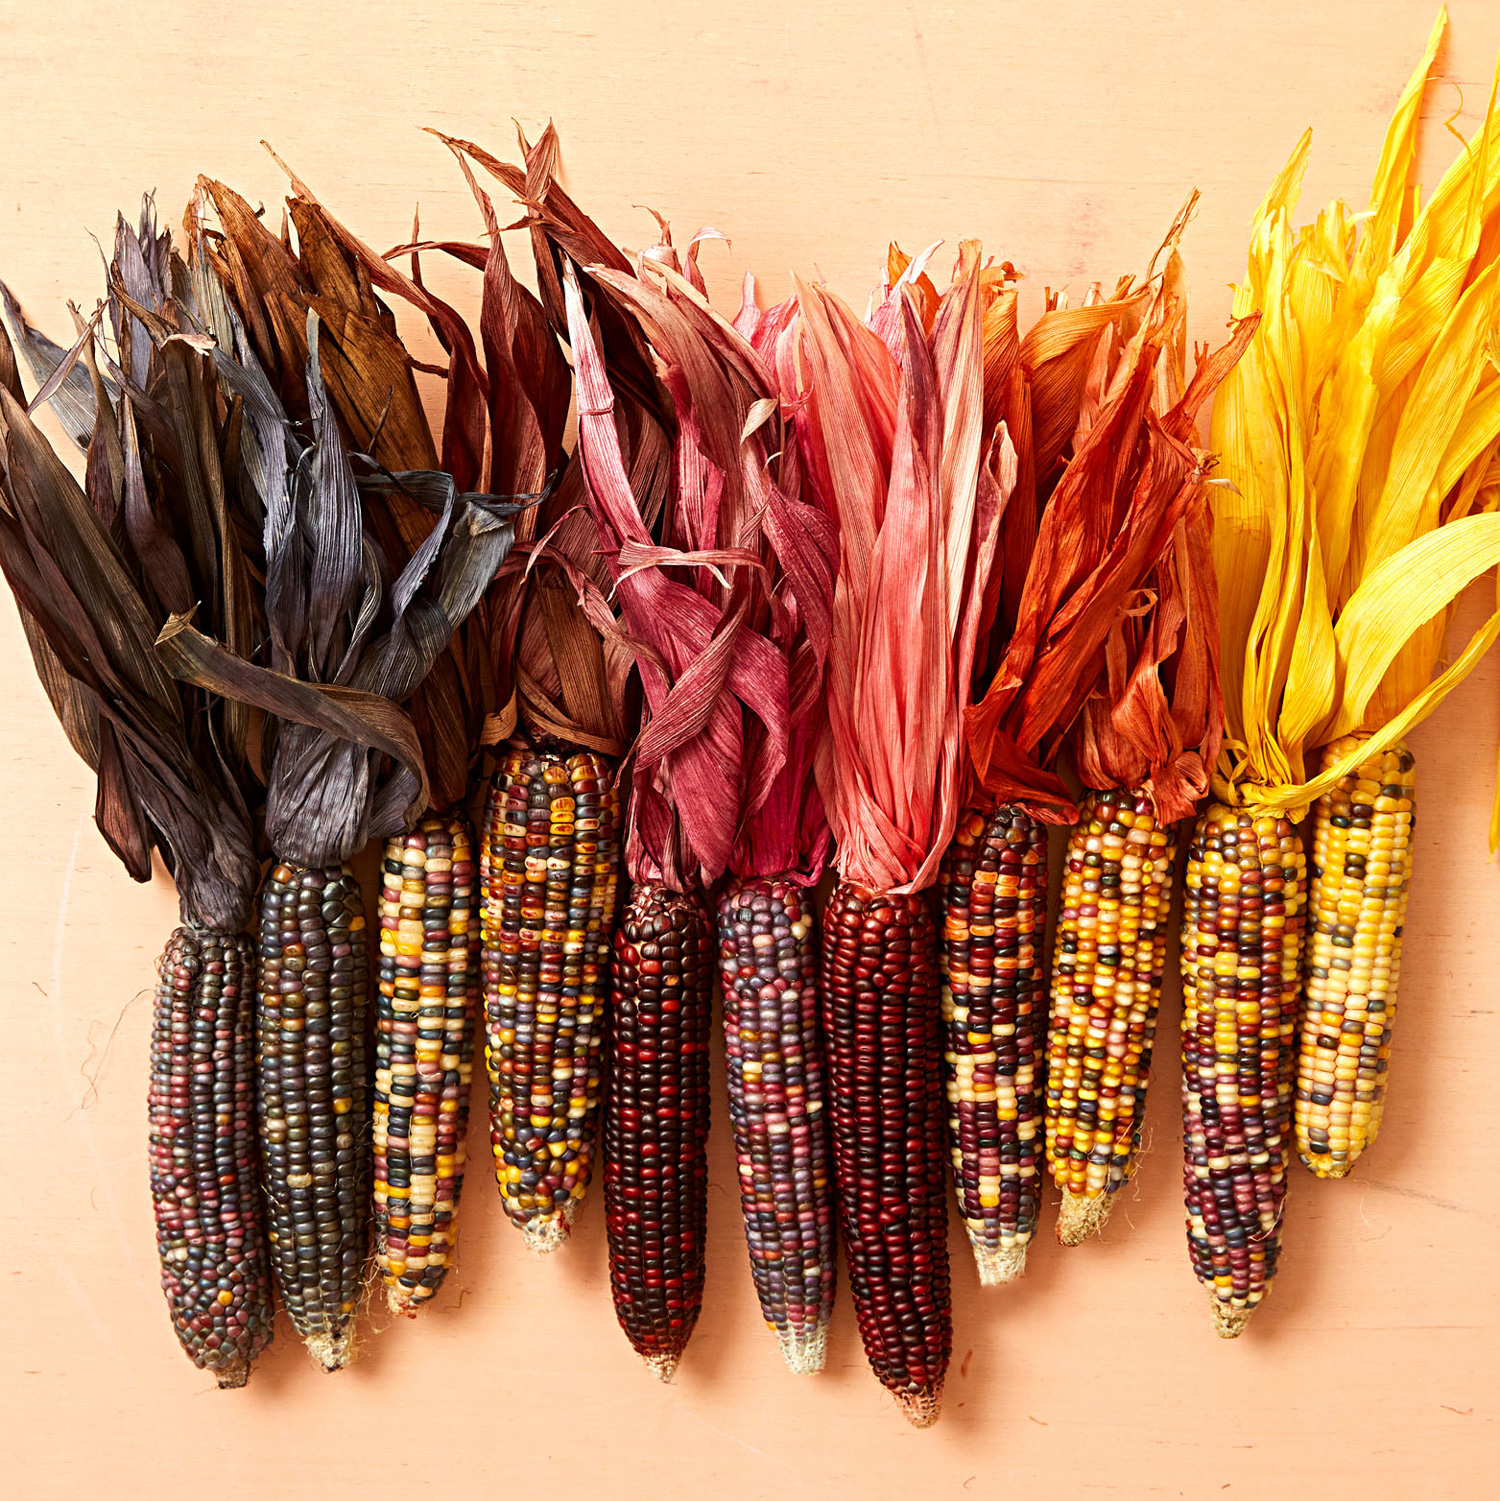 Dyed corn husks